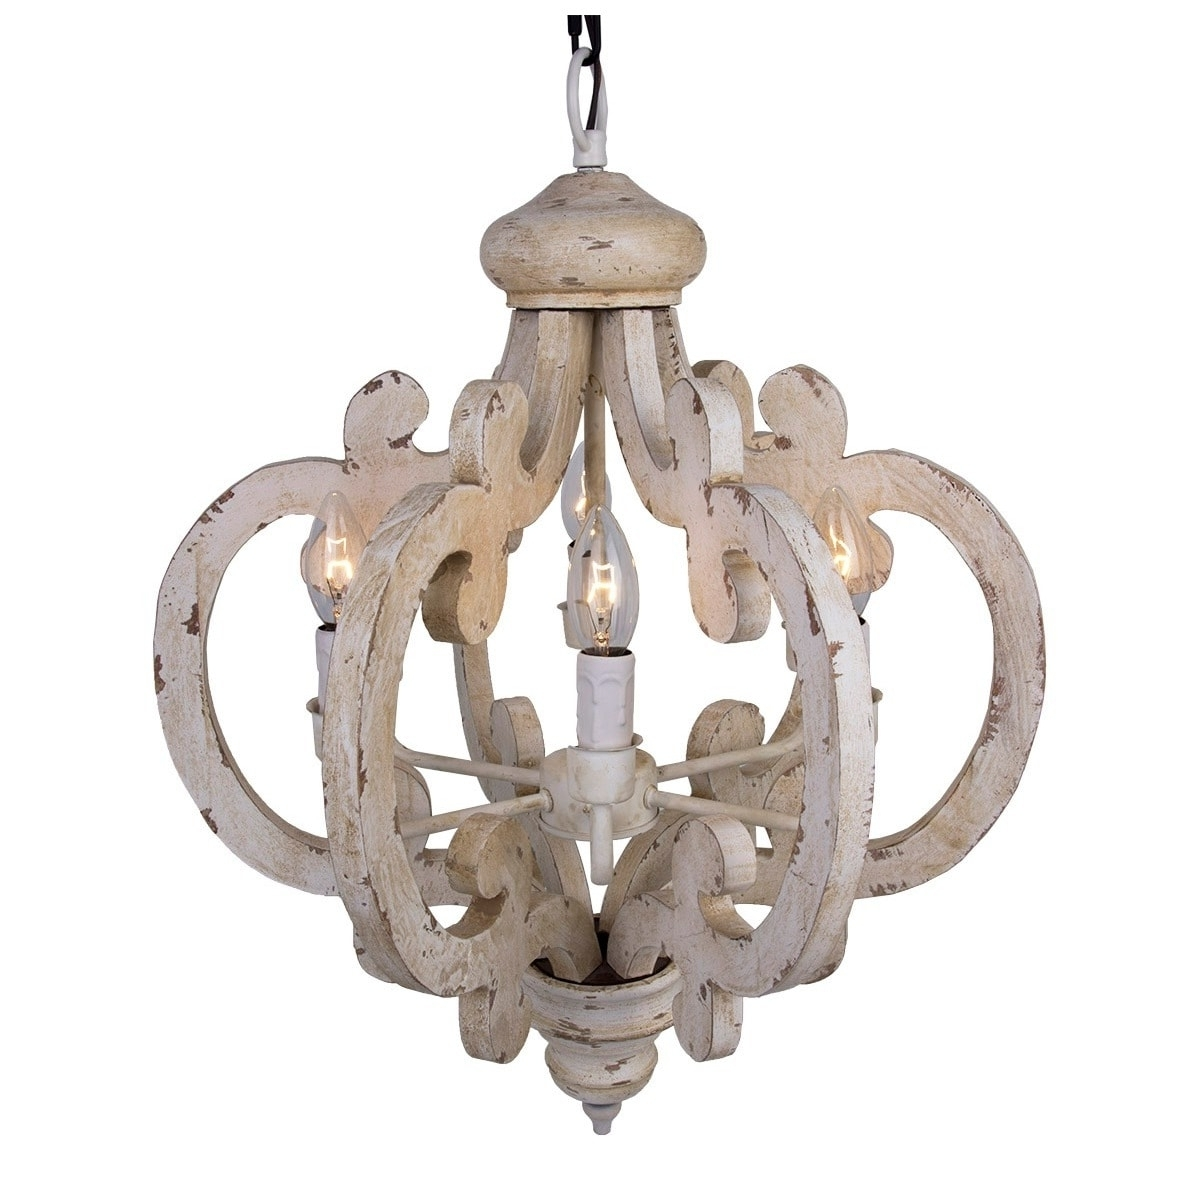 6 Light Distressed Antique White Wooden Chandelier – Free Shipping Intended For Widely Used Wooden Chandeliers (View 4 of 15)